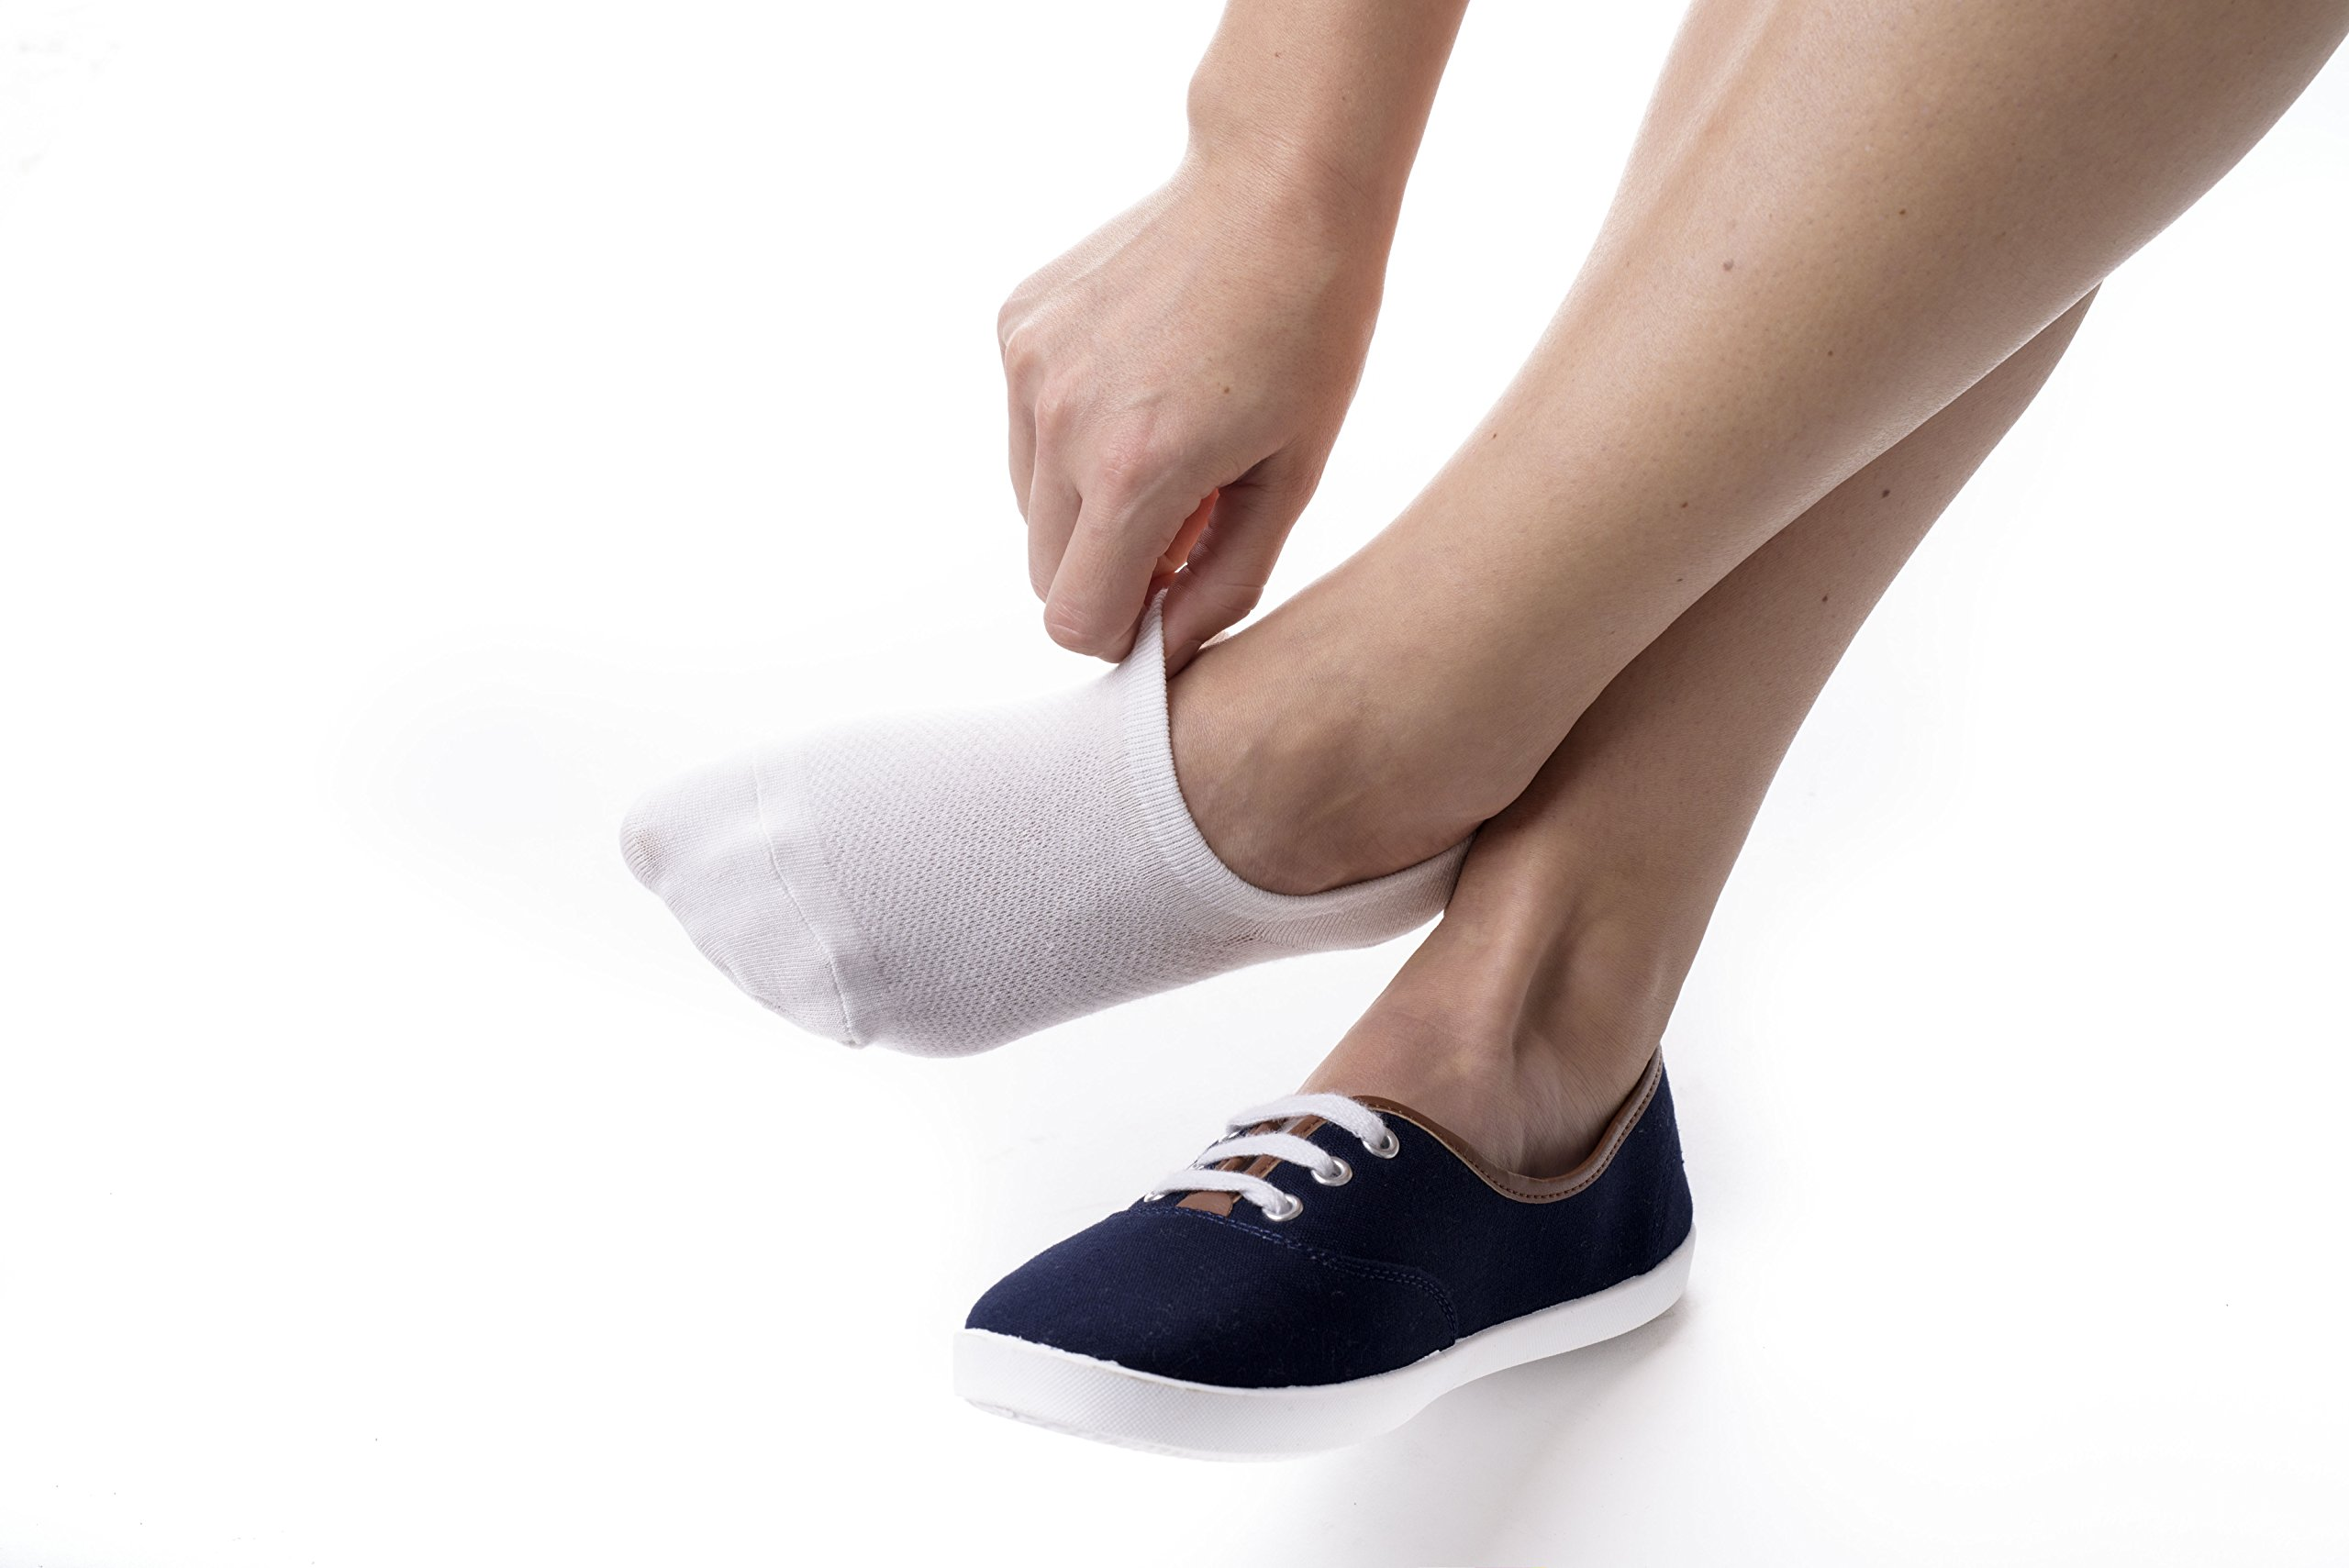 Bam&bü Women's Premium Bamboo No Show Casual Socks - 3 or 4 pair pack - Non-Slip by bam & bü (Image #4)